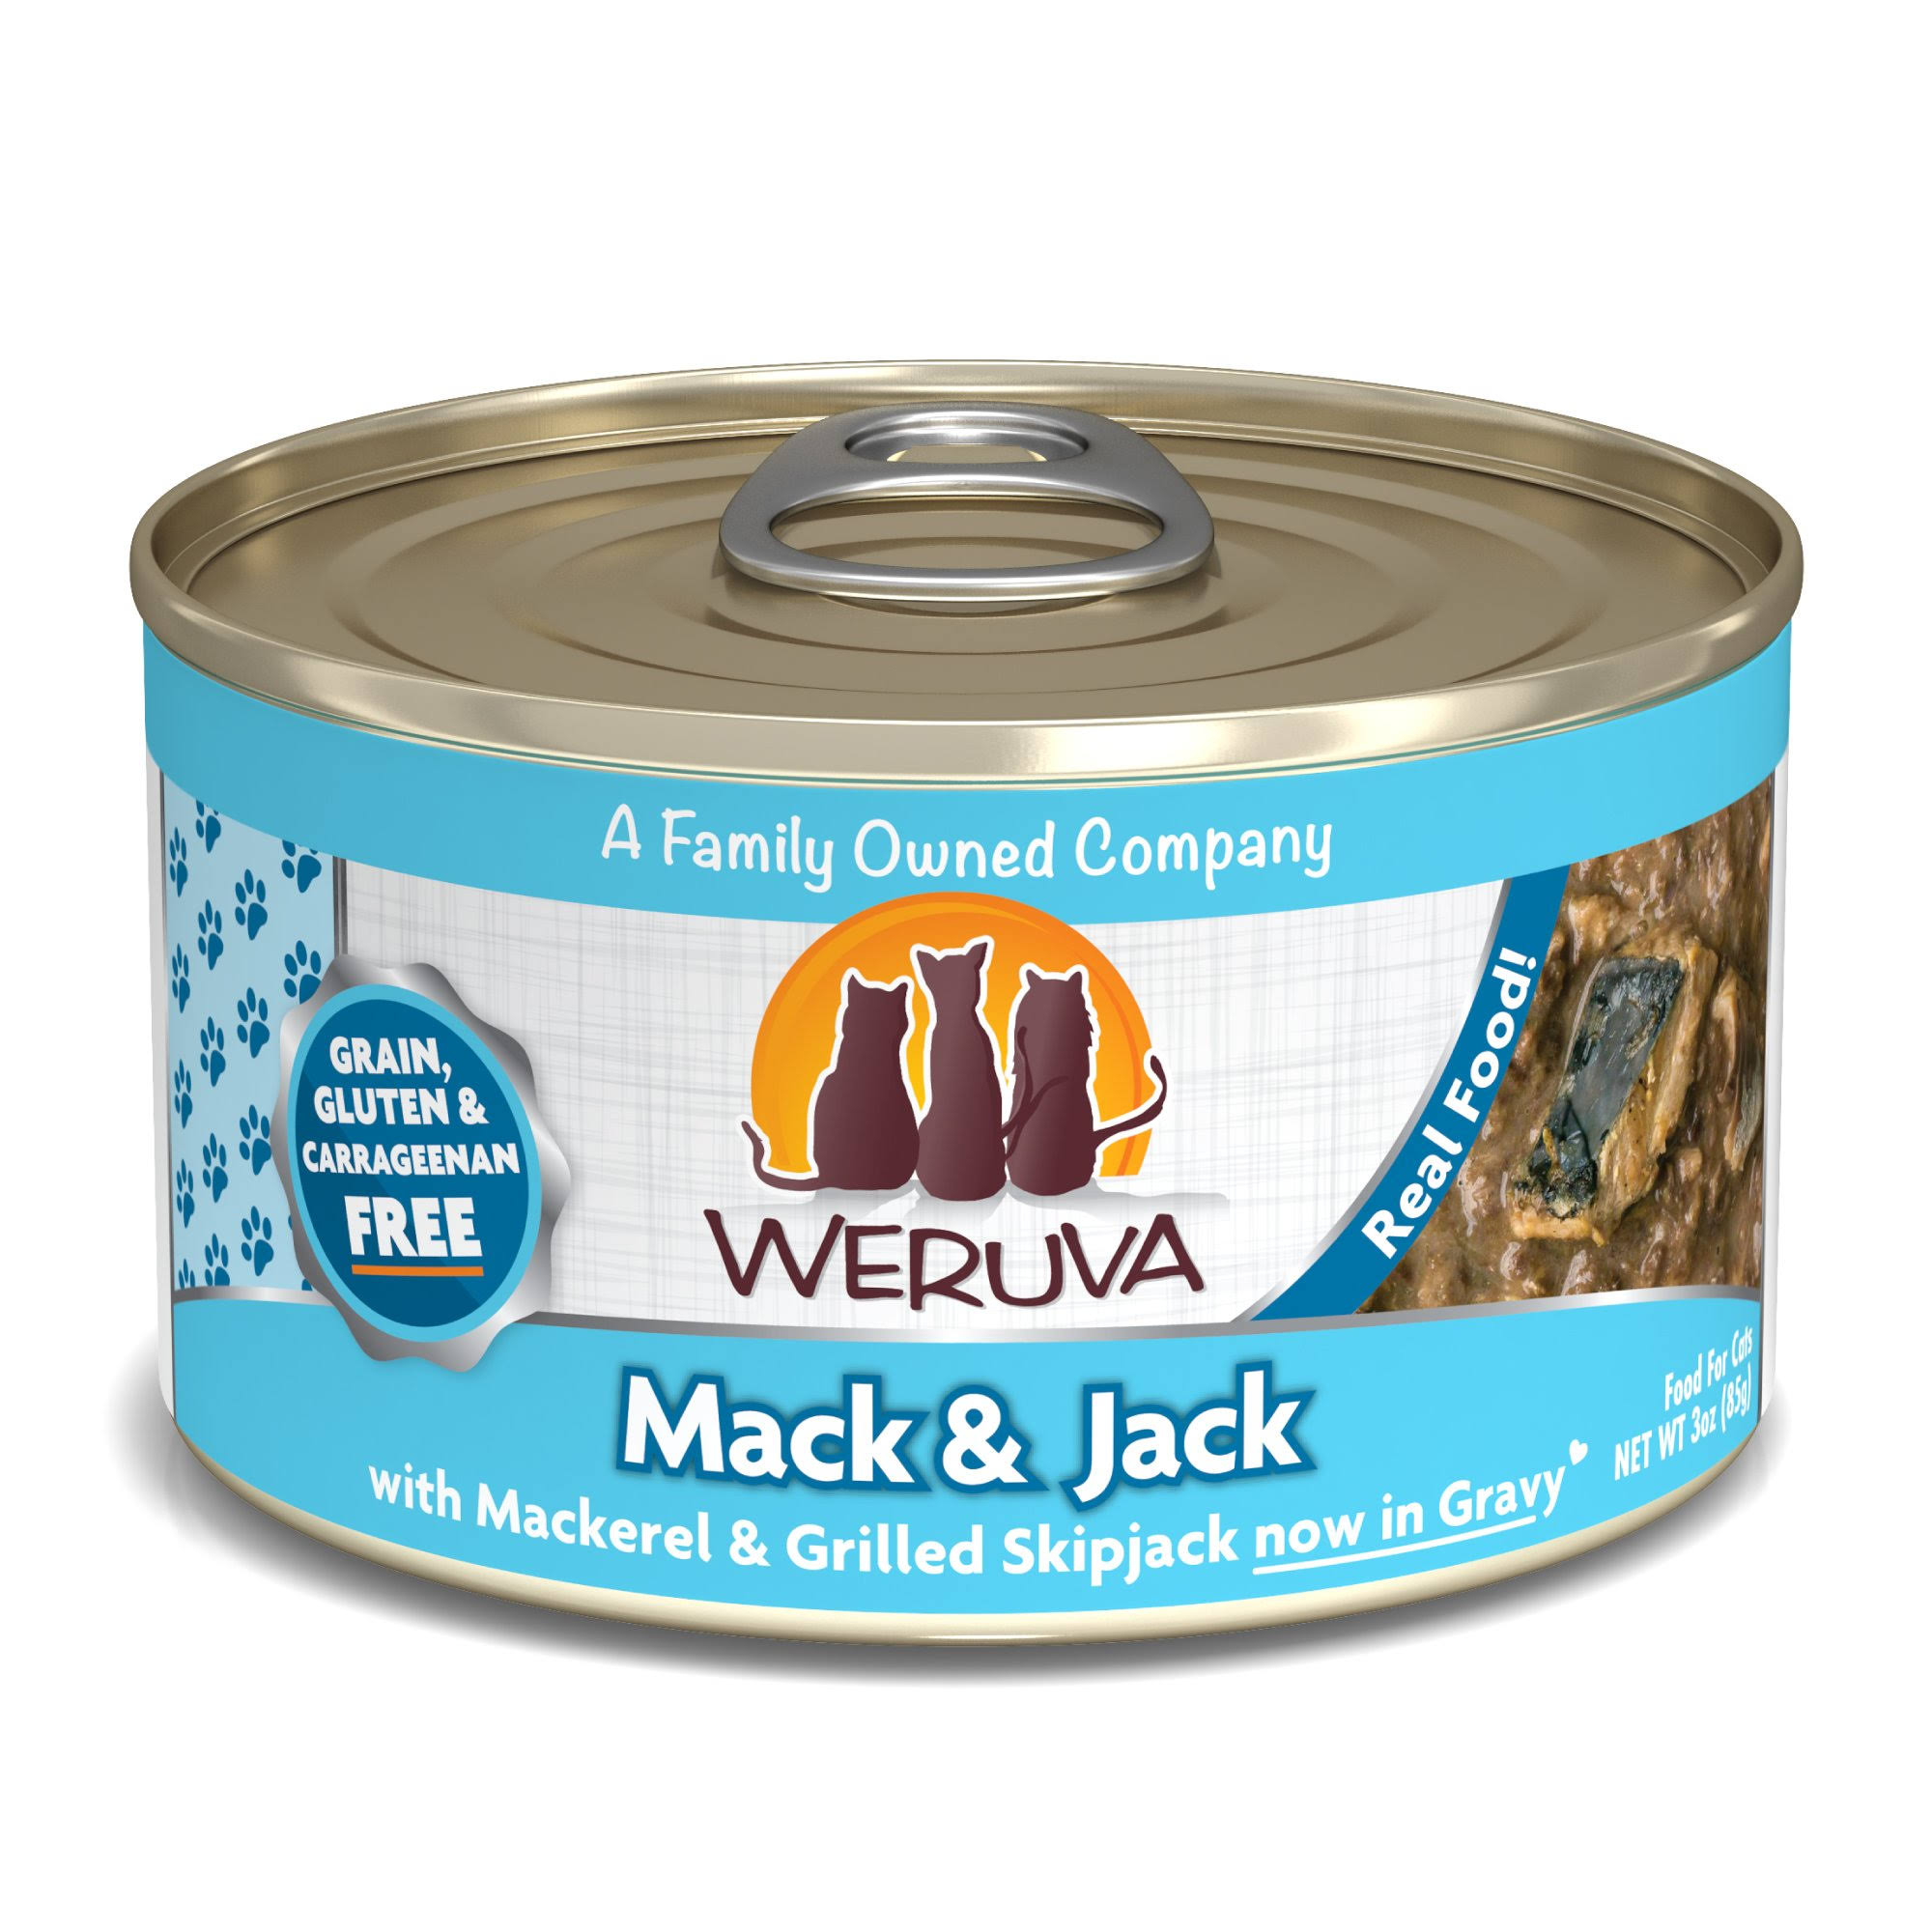 Weruva Canned Cat Food - Mack and Jack with Mackerel & Grilled Skipjack